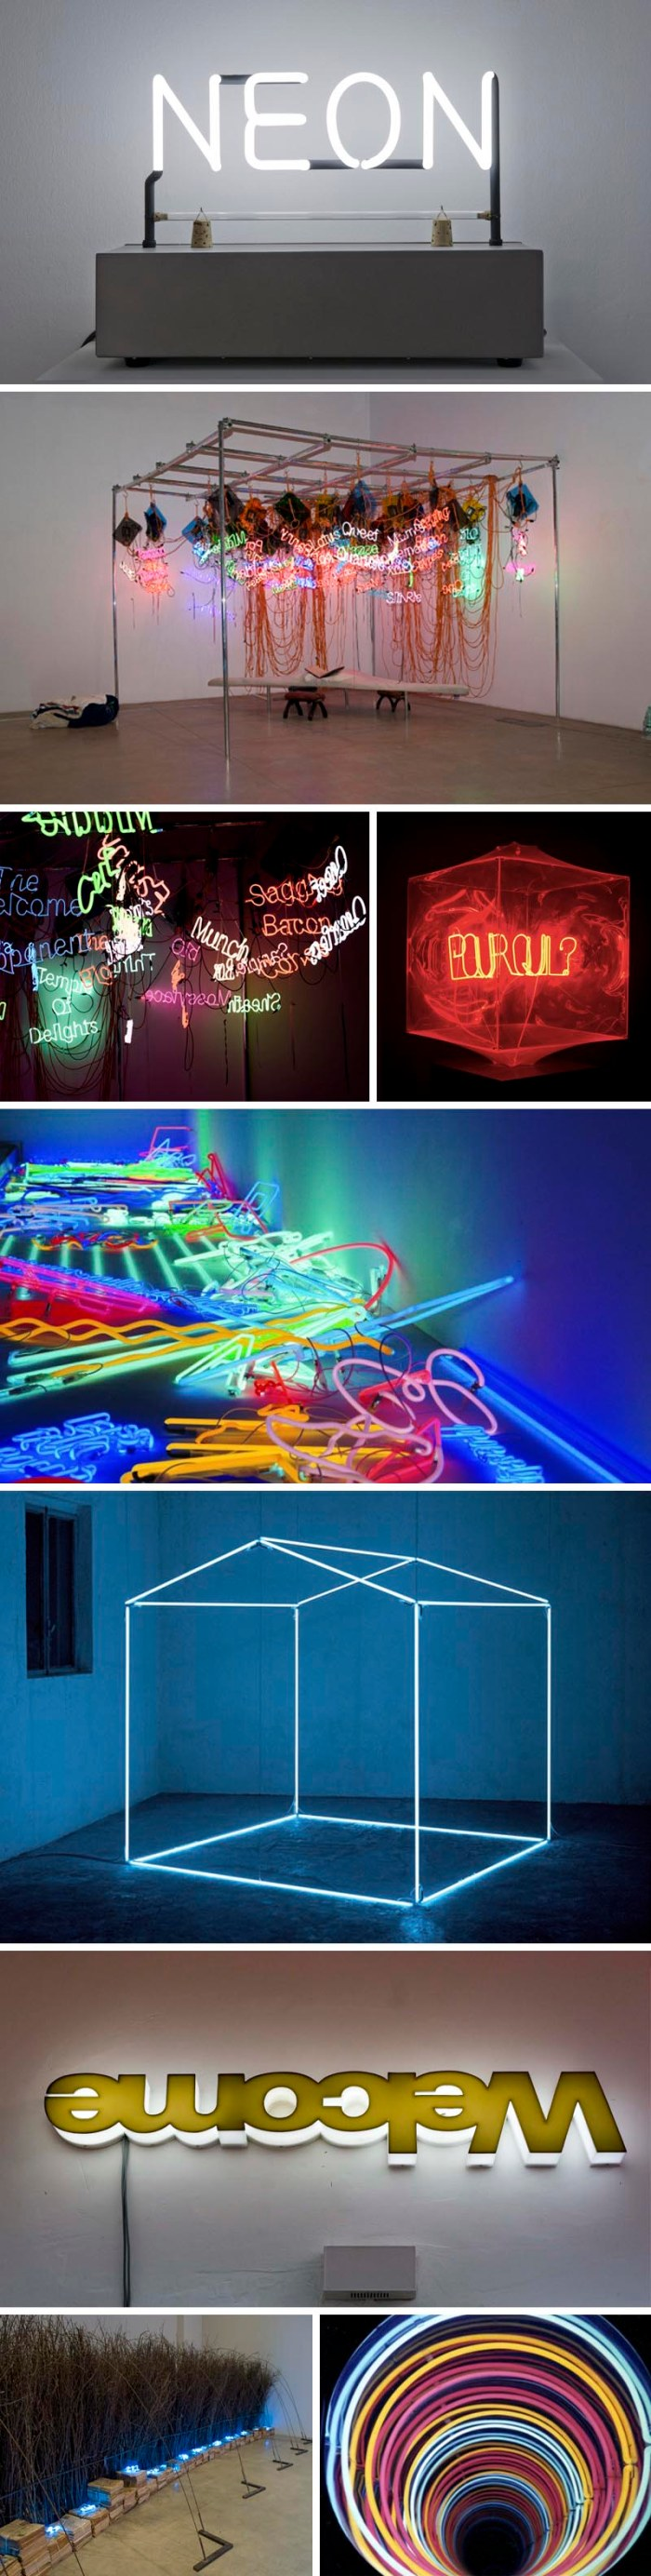 Neon: La materia luminosa dell'arte at MACRO, Museum of Contemporary art of Rome, Neon retrospective